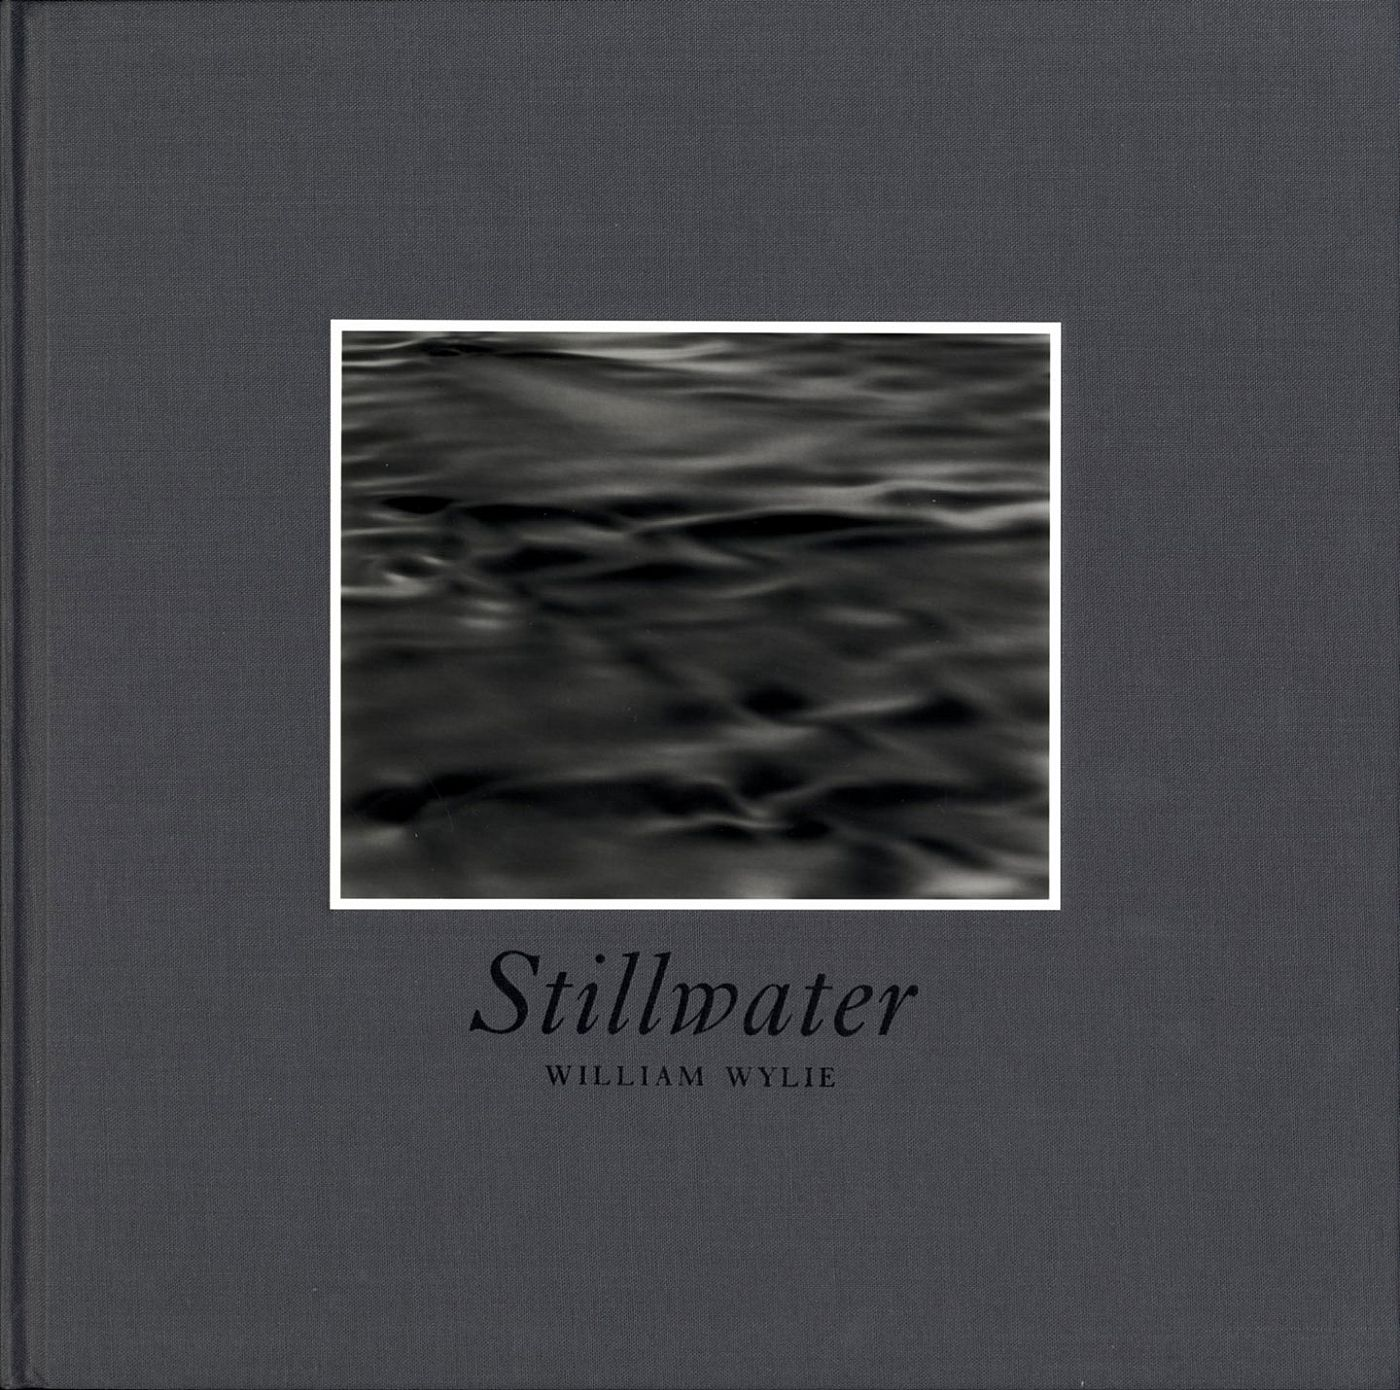 William Wylie: Stillwater, Limited Edition (with Tipped-in Gelatin Silver Print) [SIGNED] (missing slipcase)